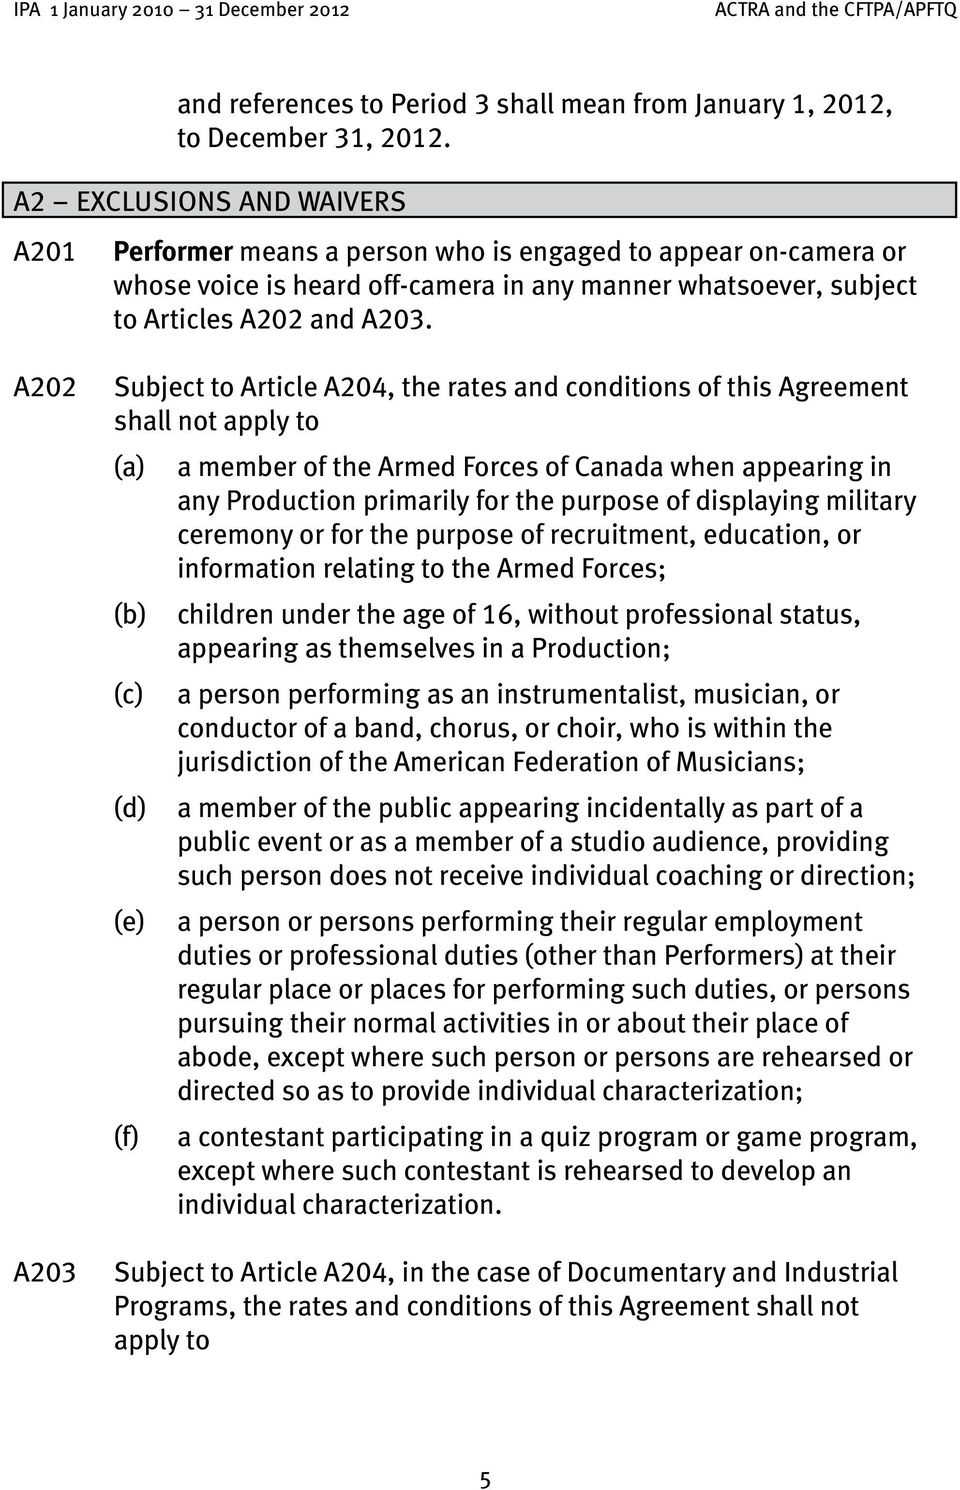 A202 A203 Subject to Article A204, the rates and conditions of this Agreement shall not apply to (a) a member of the Armed Forces of Canada when appearing in any Production primarily for the purpose